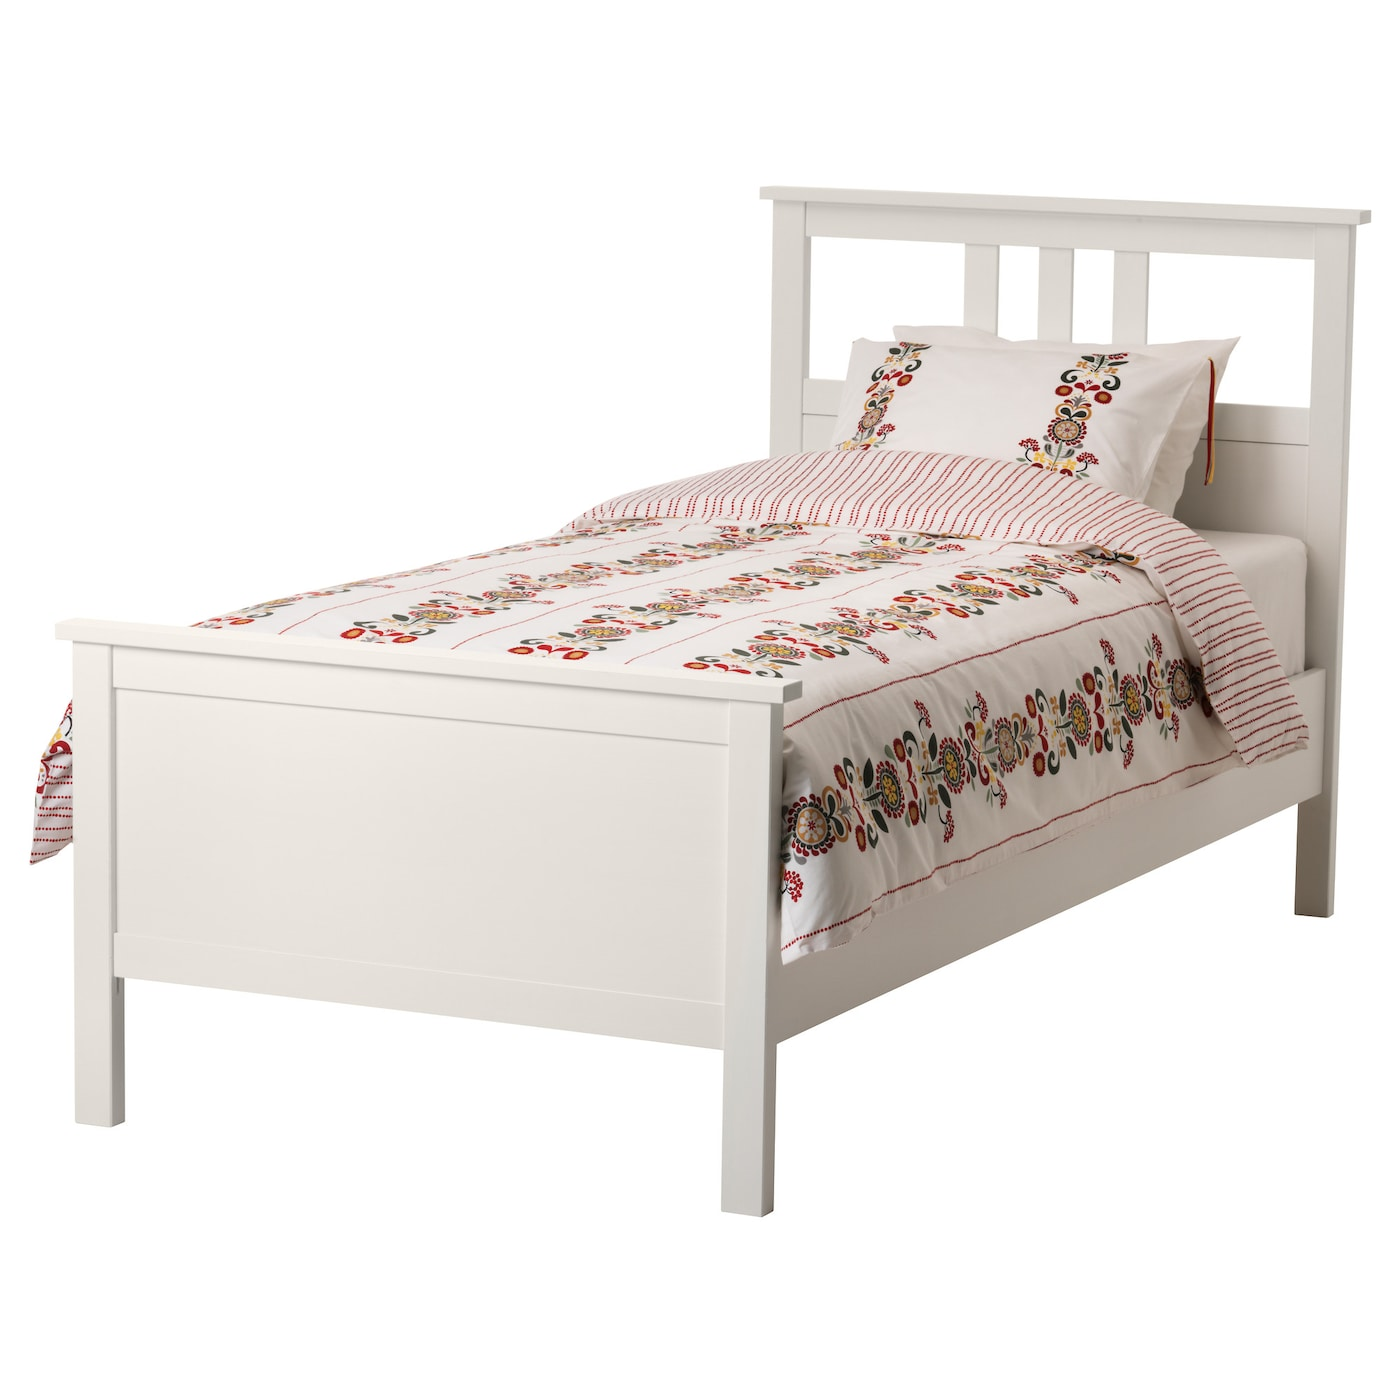 Single Beds & Single Bed Frames - IKEA